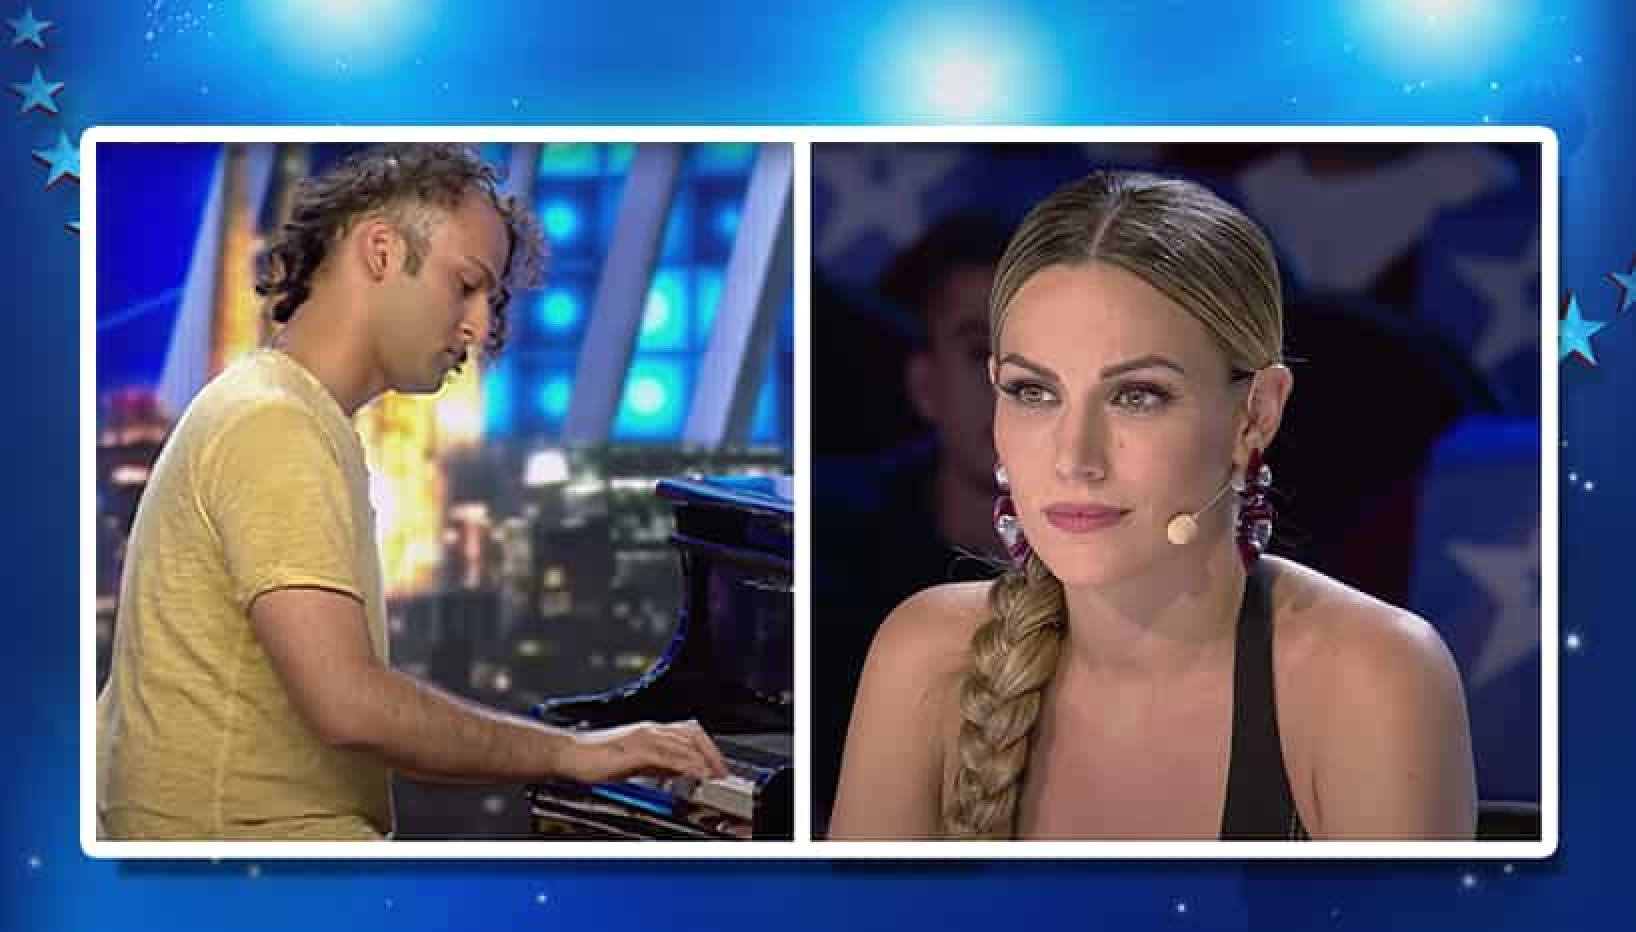 WATCH: Nepali Guy Wins Hearts With An Emotional Performance In Spain's Got Talent